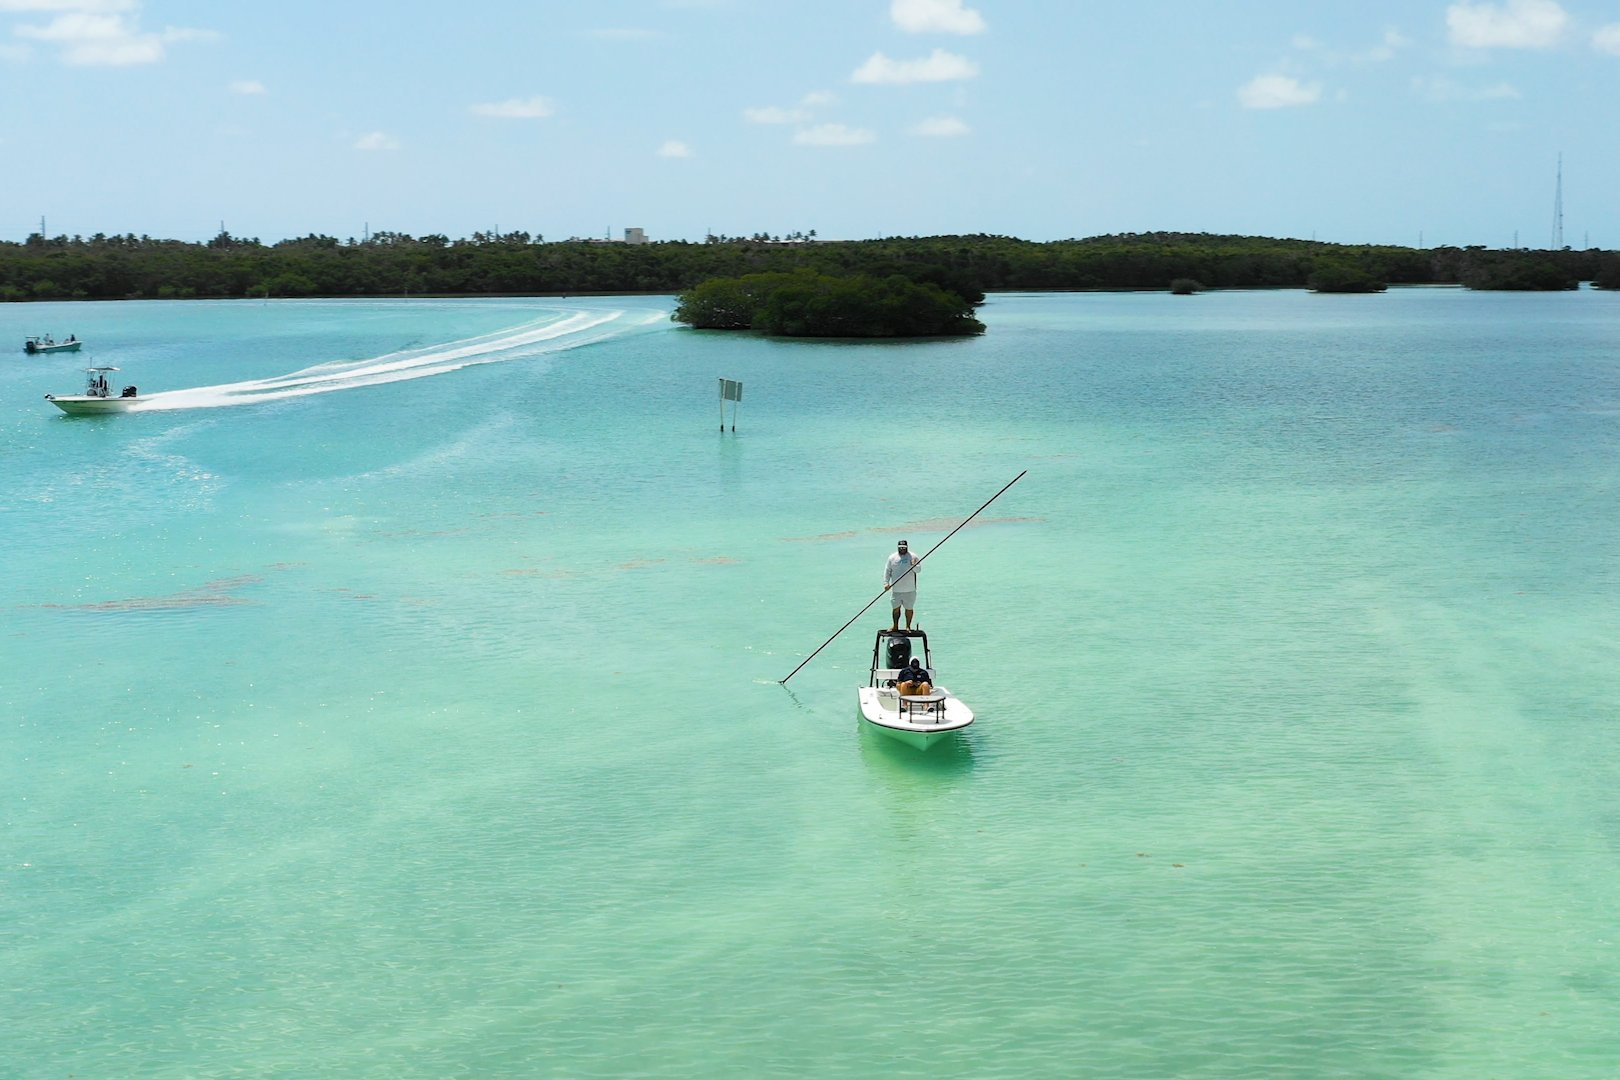 A man poling across shallow water on a flats fishing boat, with mangroves and another boat in the distance